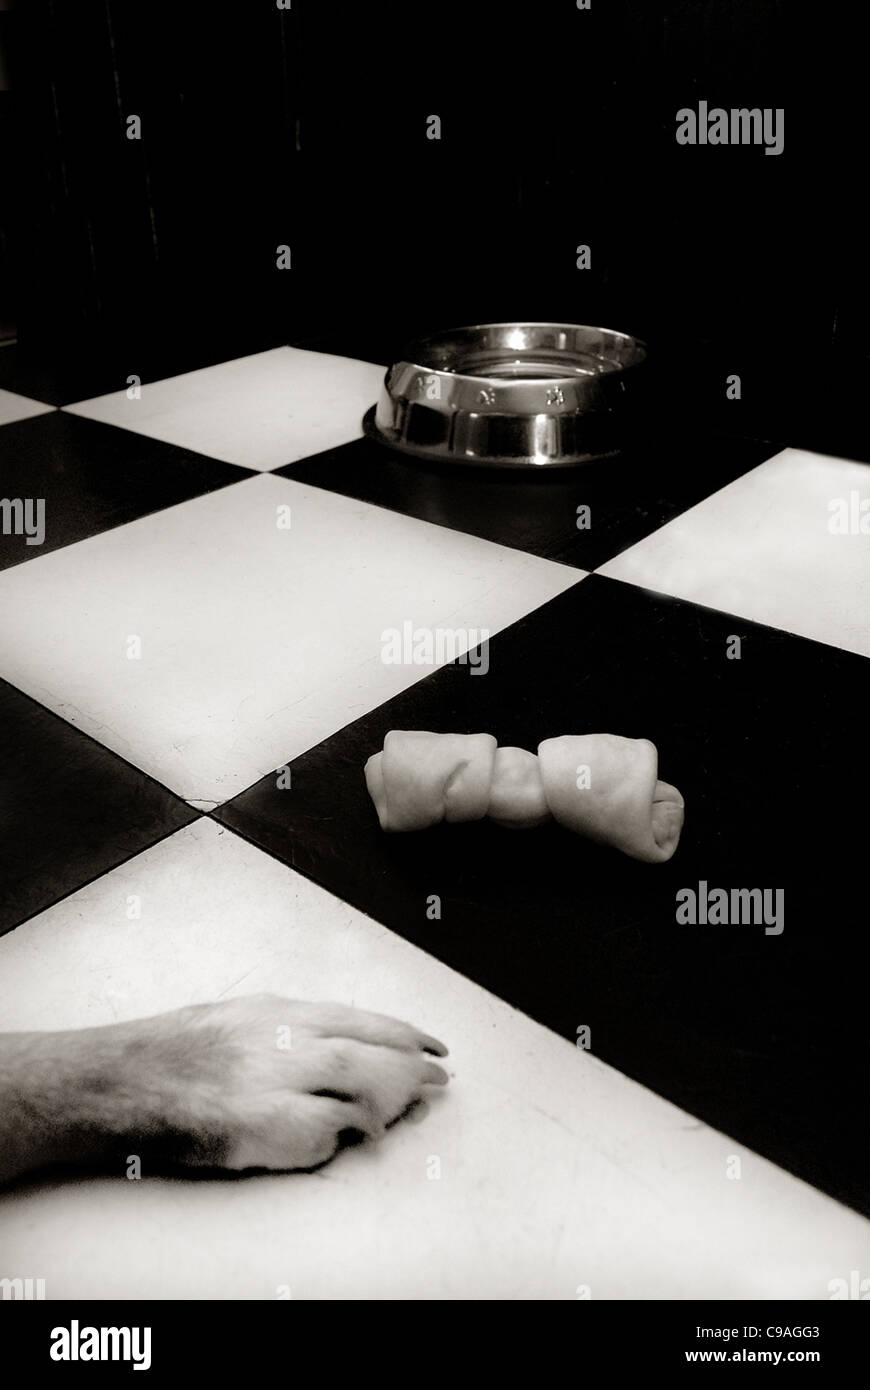 Dog bowl and chewy bone with dog paw on black and white chequered floor - Stock Image